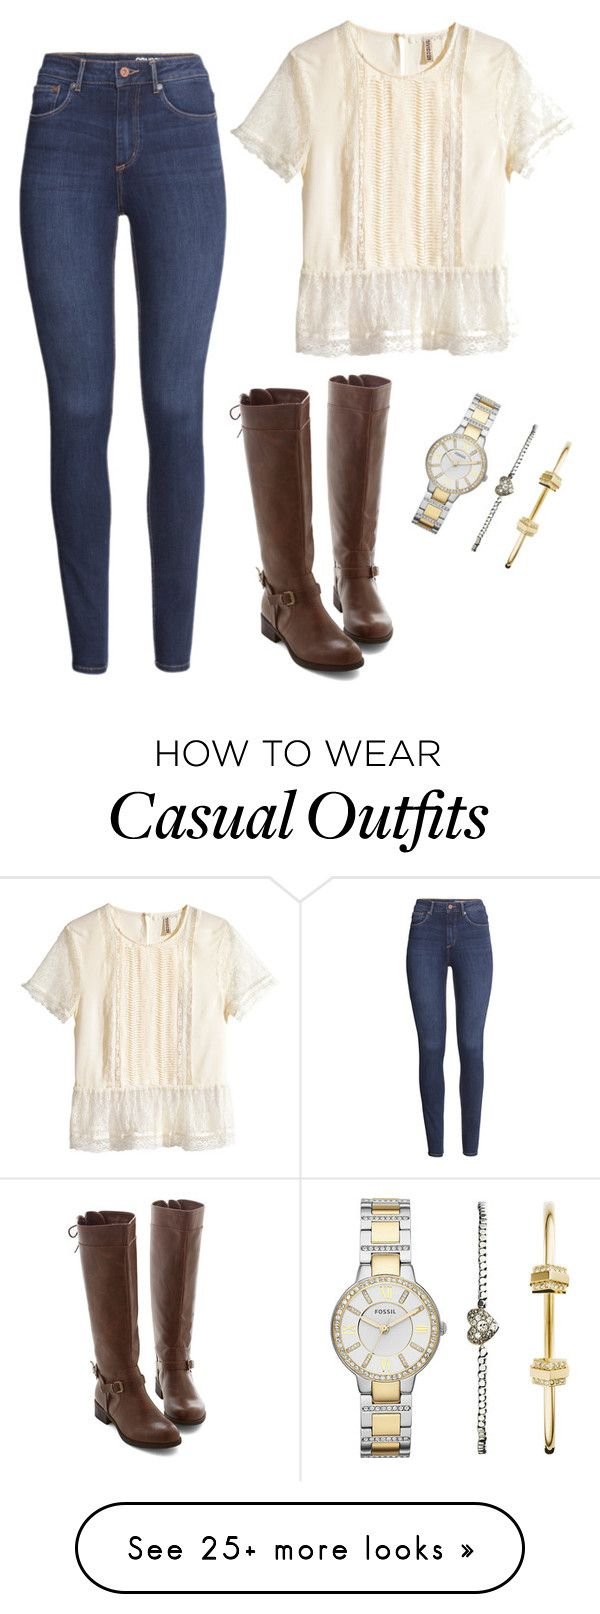 """Church casual"" by the-preppy-mermaid on Polyvore featuring H&M and FOSSIL"